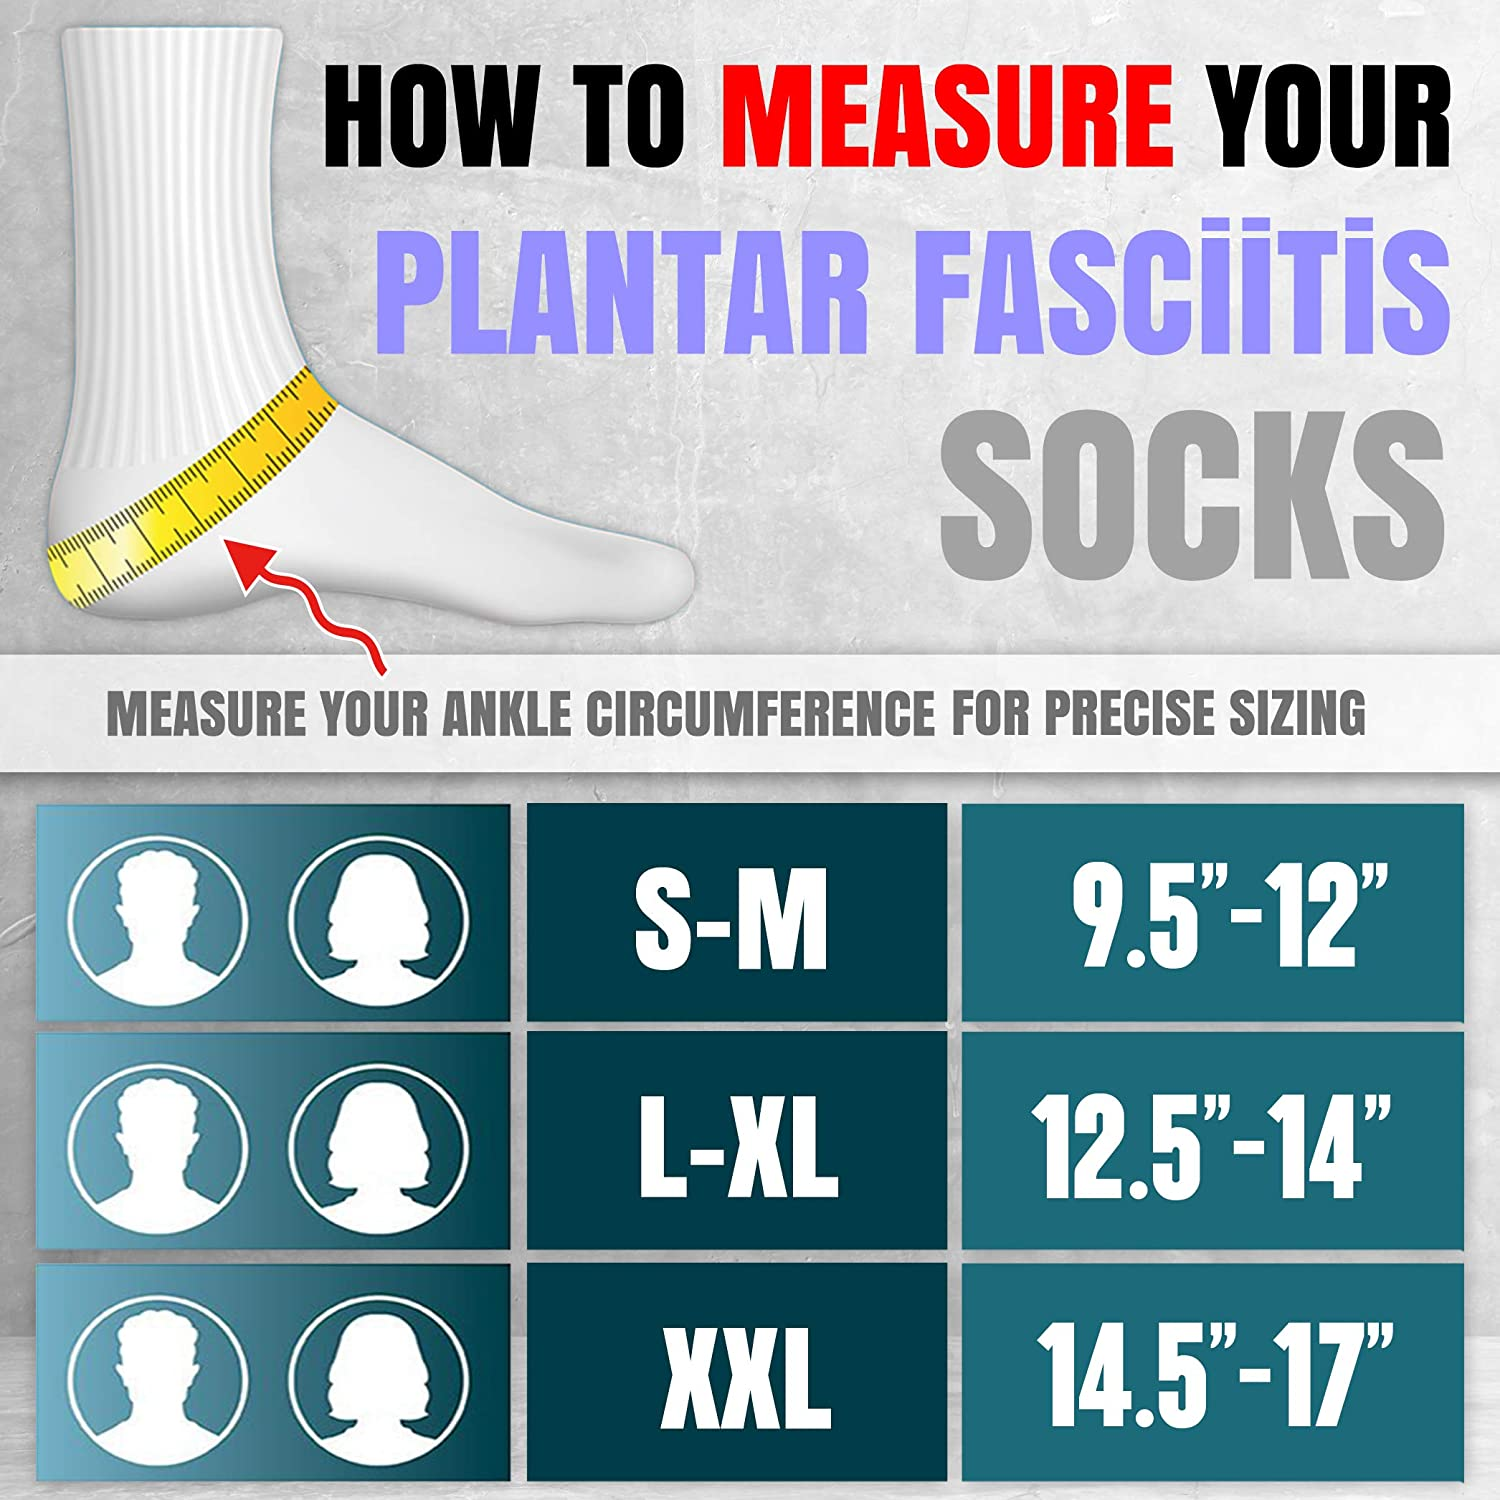 Plantar Fascitis Socks Compression Socks Toeless Ankle Swelling Relief Foot Sleeve Compression Support Ankle Splint for Plantar Compression Sleeve for Foot Nano socks for Neuropathy Relief Blue L-XL : Health & Household